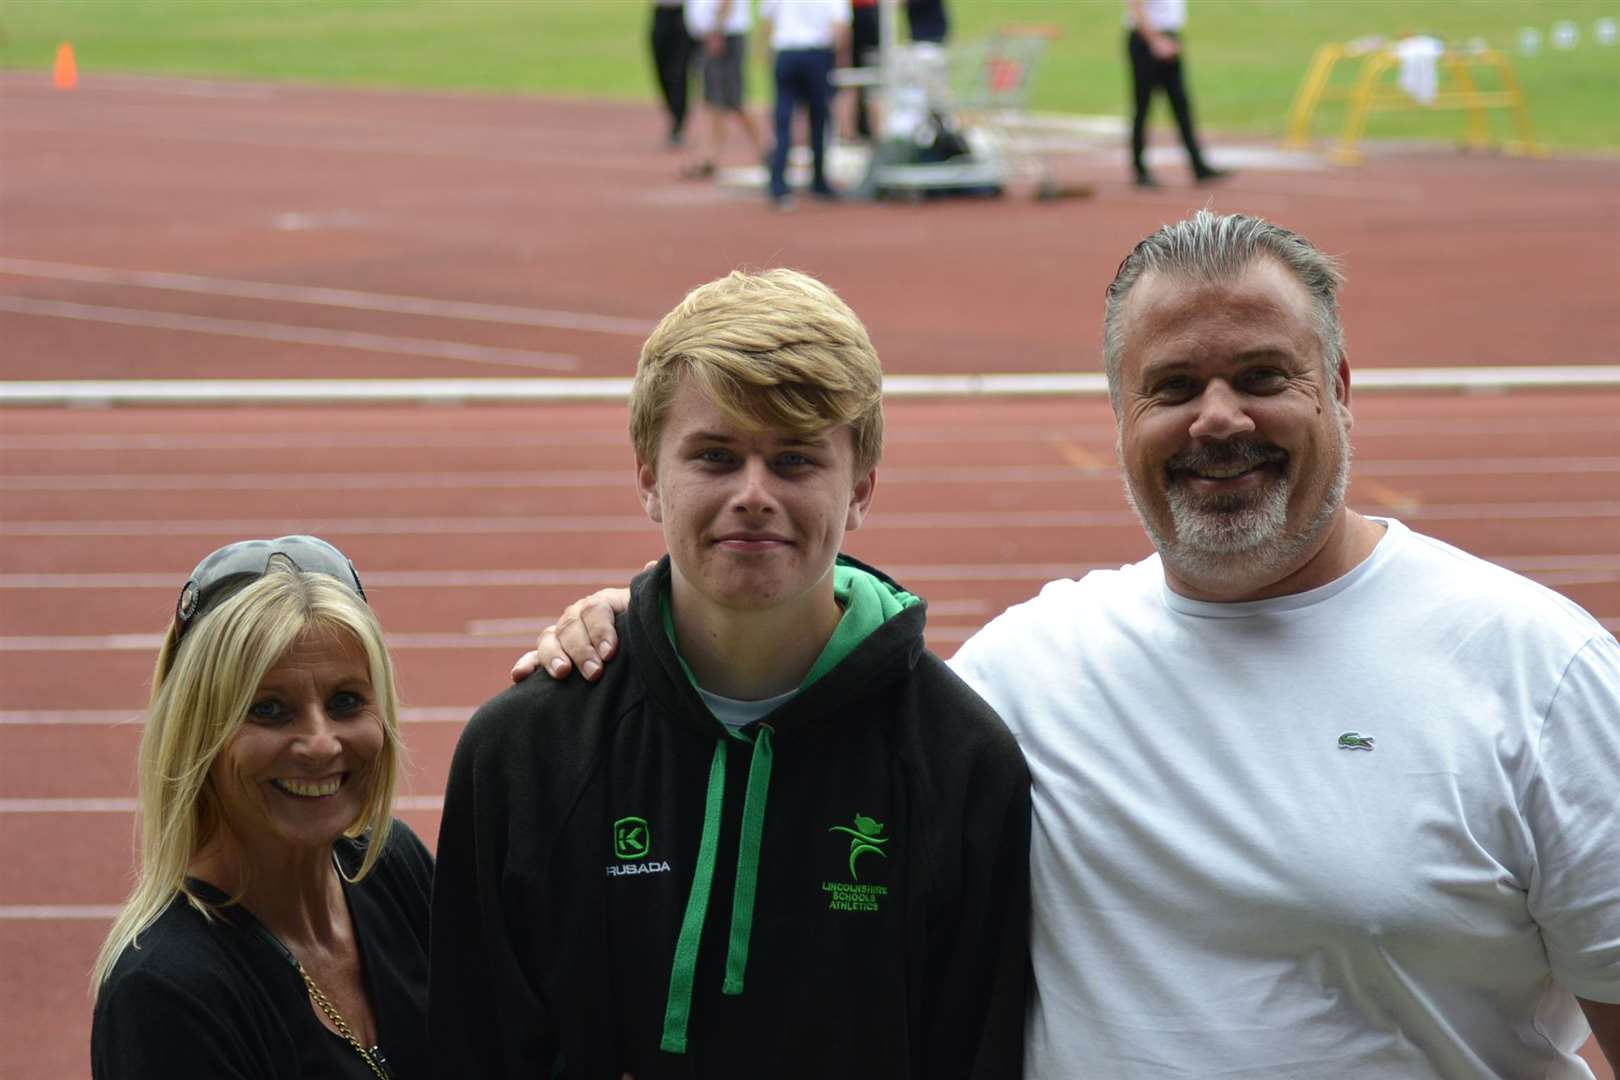 Donovan Capes with mum Samantha and dad/coach Lewis after winning the junior boys' shot put at the English Schools Track and Field Championships in BirminghamPhoto supplied.